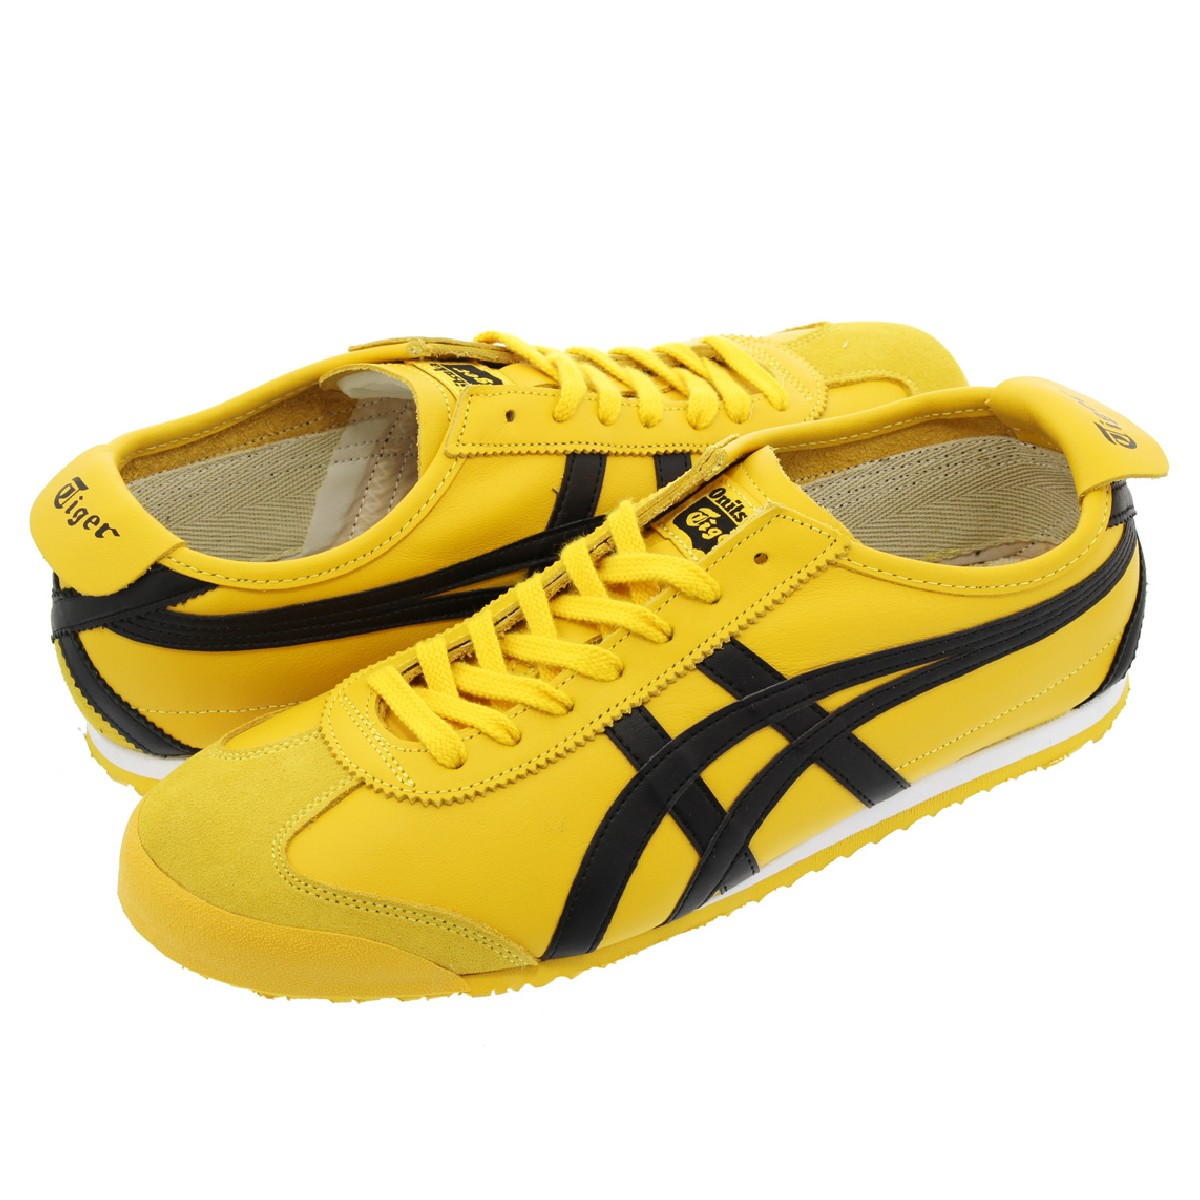 Onitsuka Tiger MEXICO 66 オニツカタイガー メキシコ 66 YELLOW/BLACK thl202-0490